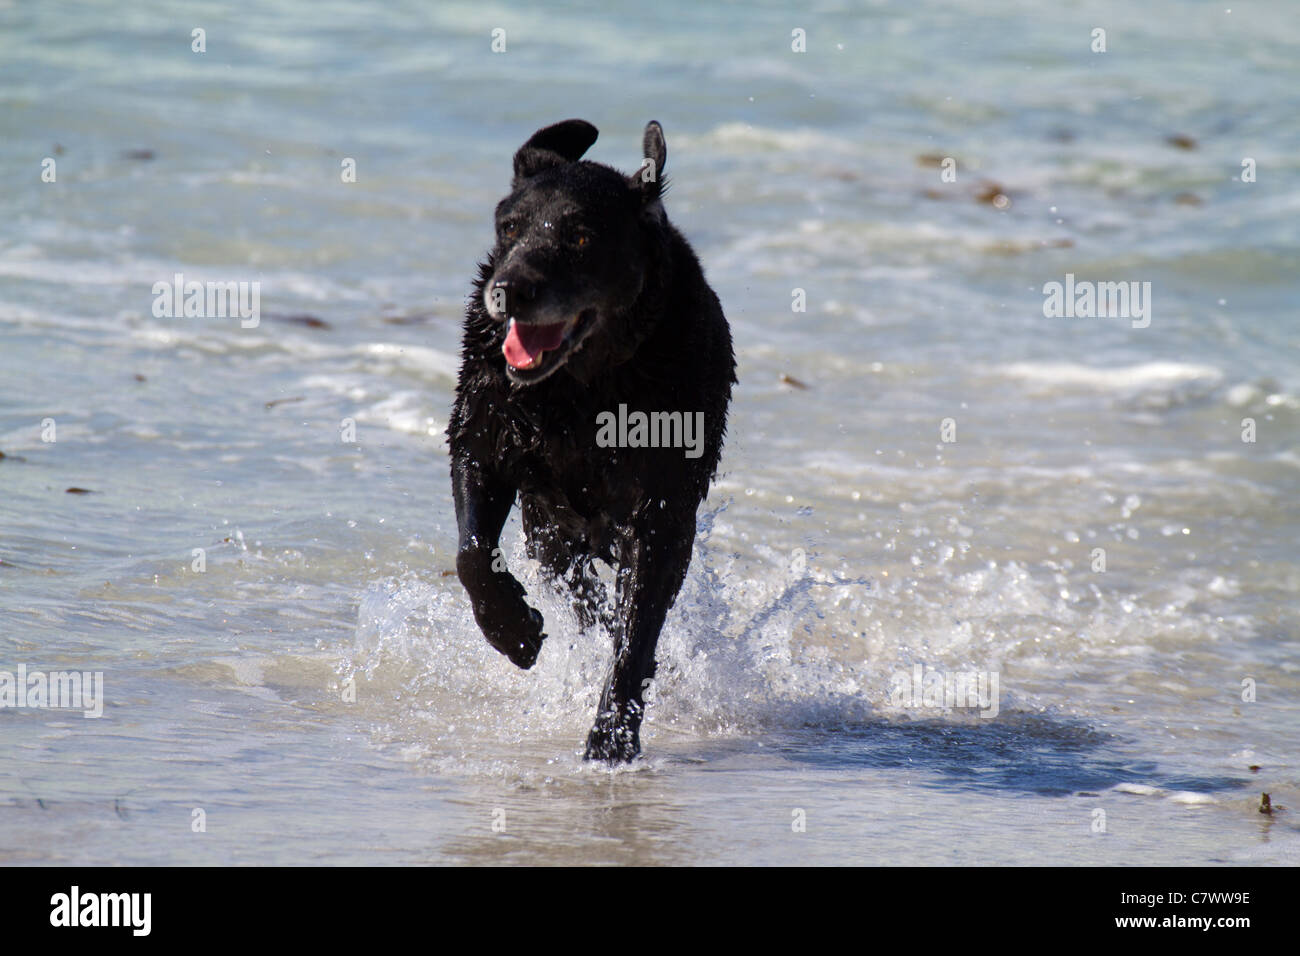 A black lab running n the water on Carmel Beach in Carmel by the Sea, California, USA - Stock Image